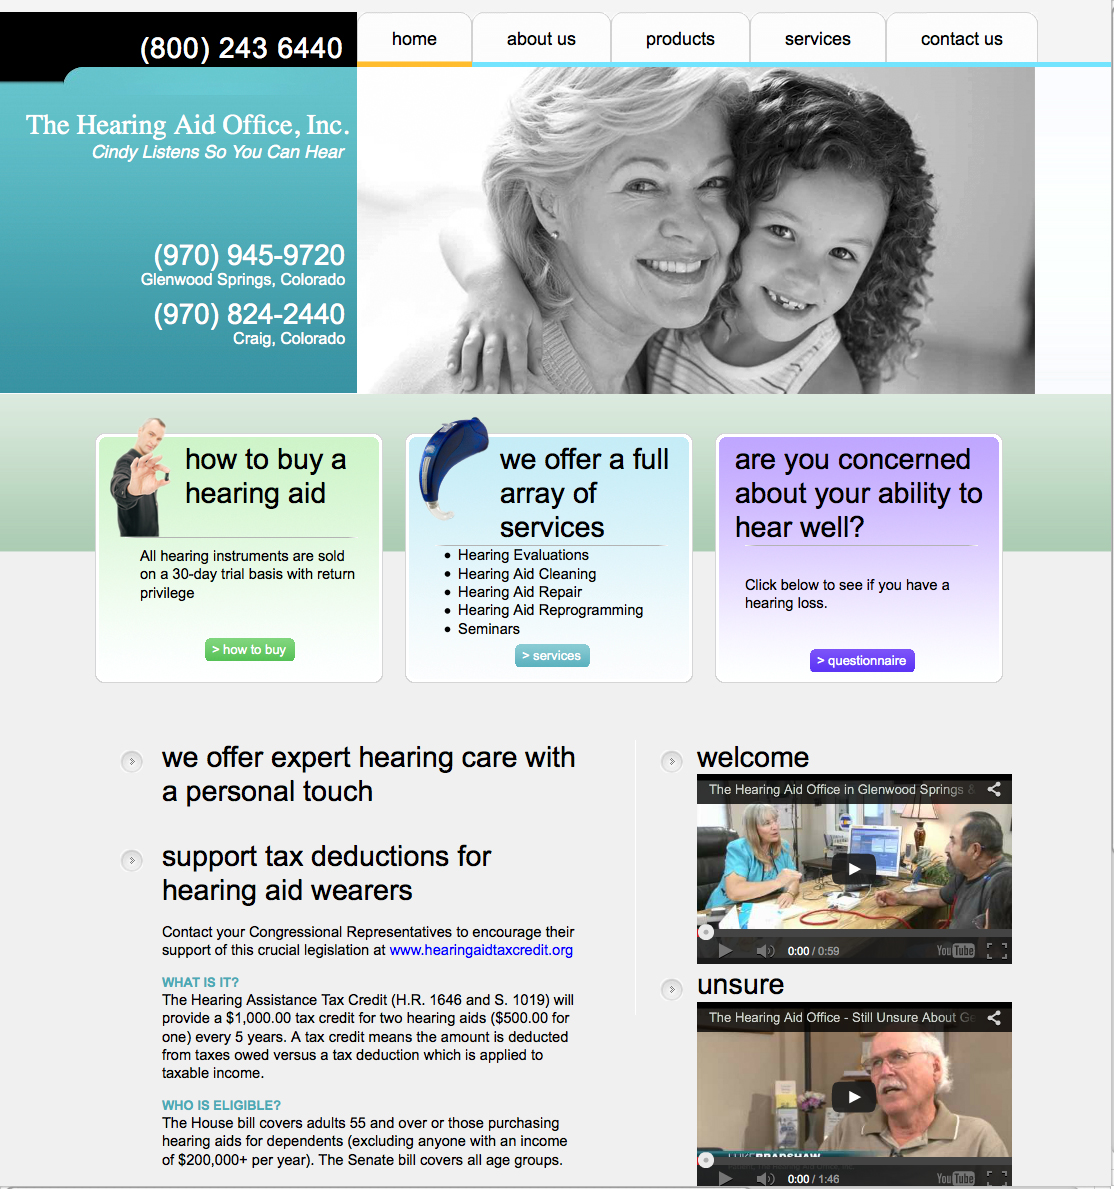 The Hearing Aid Office, Inc.